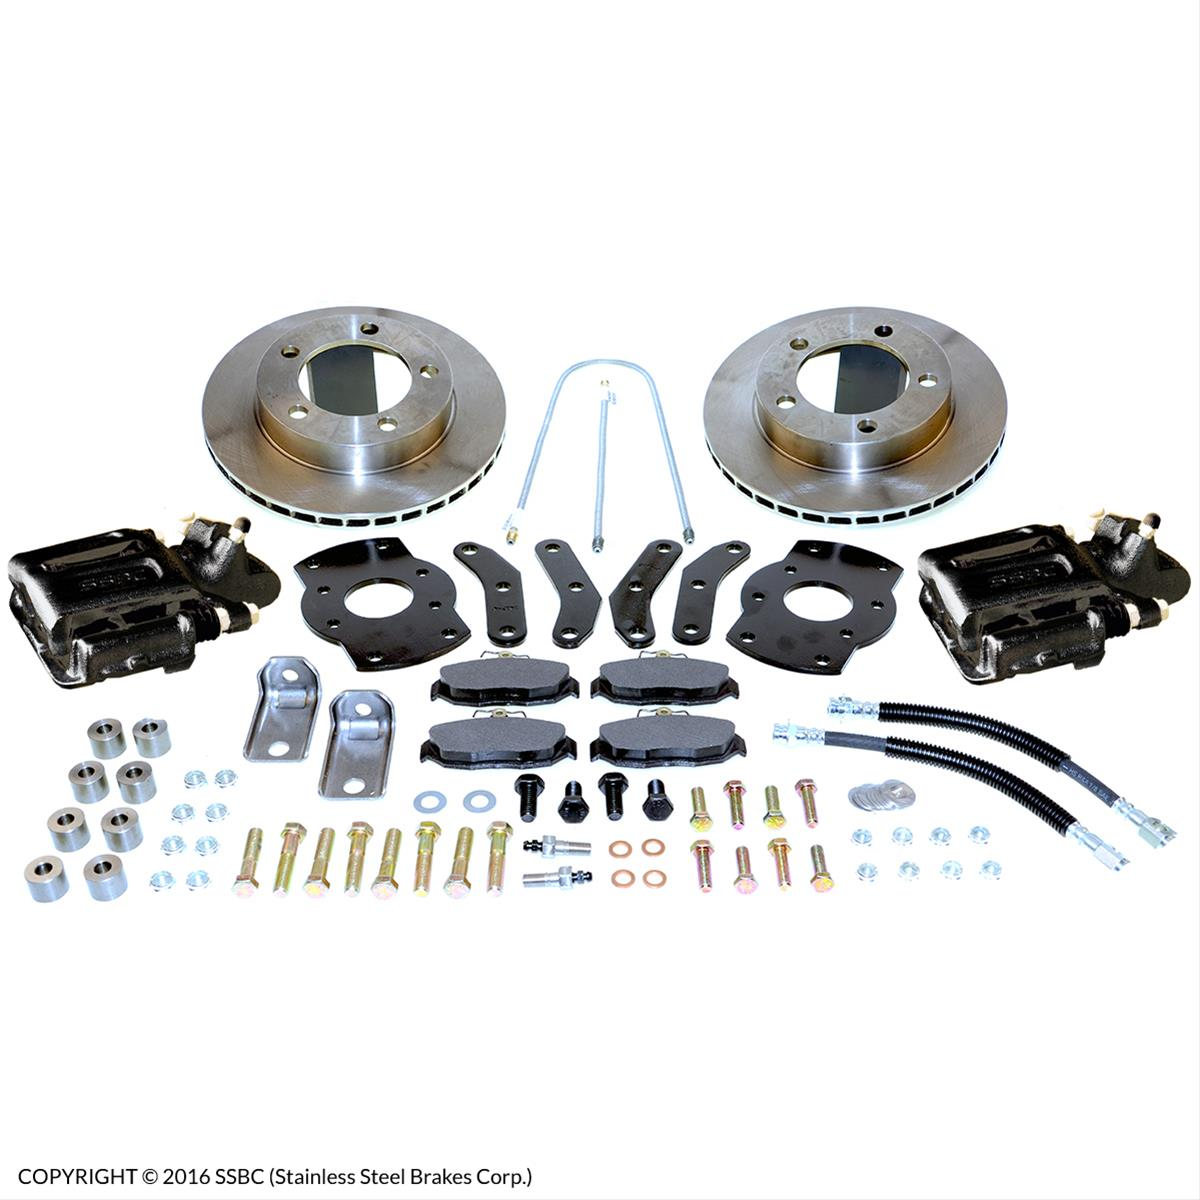 SSBC Drum to Disc Brake Conversion Kits A130BK